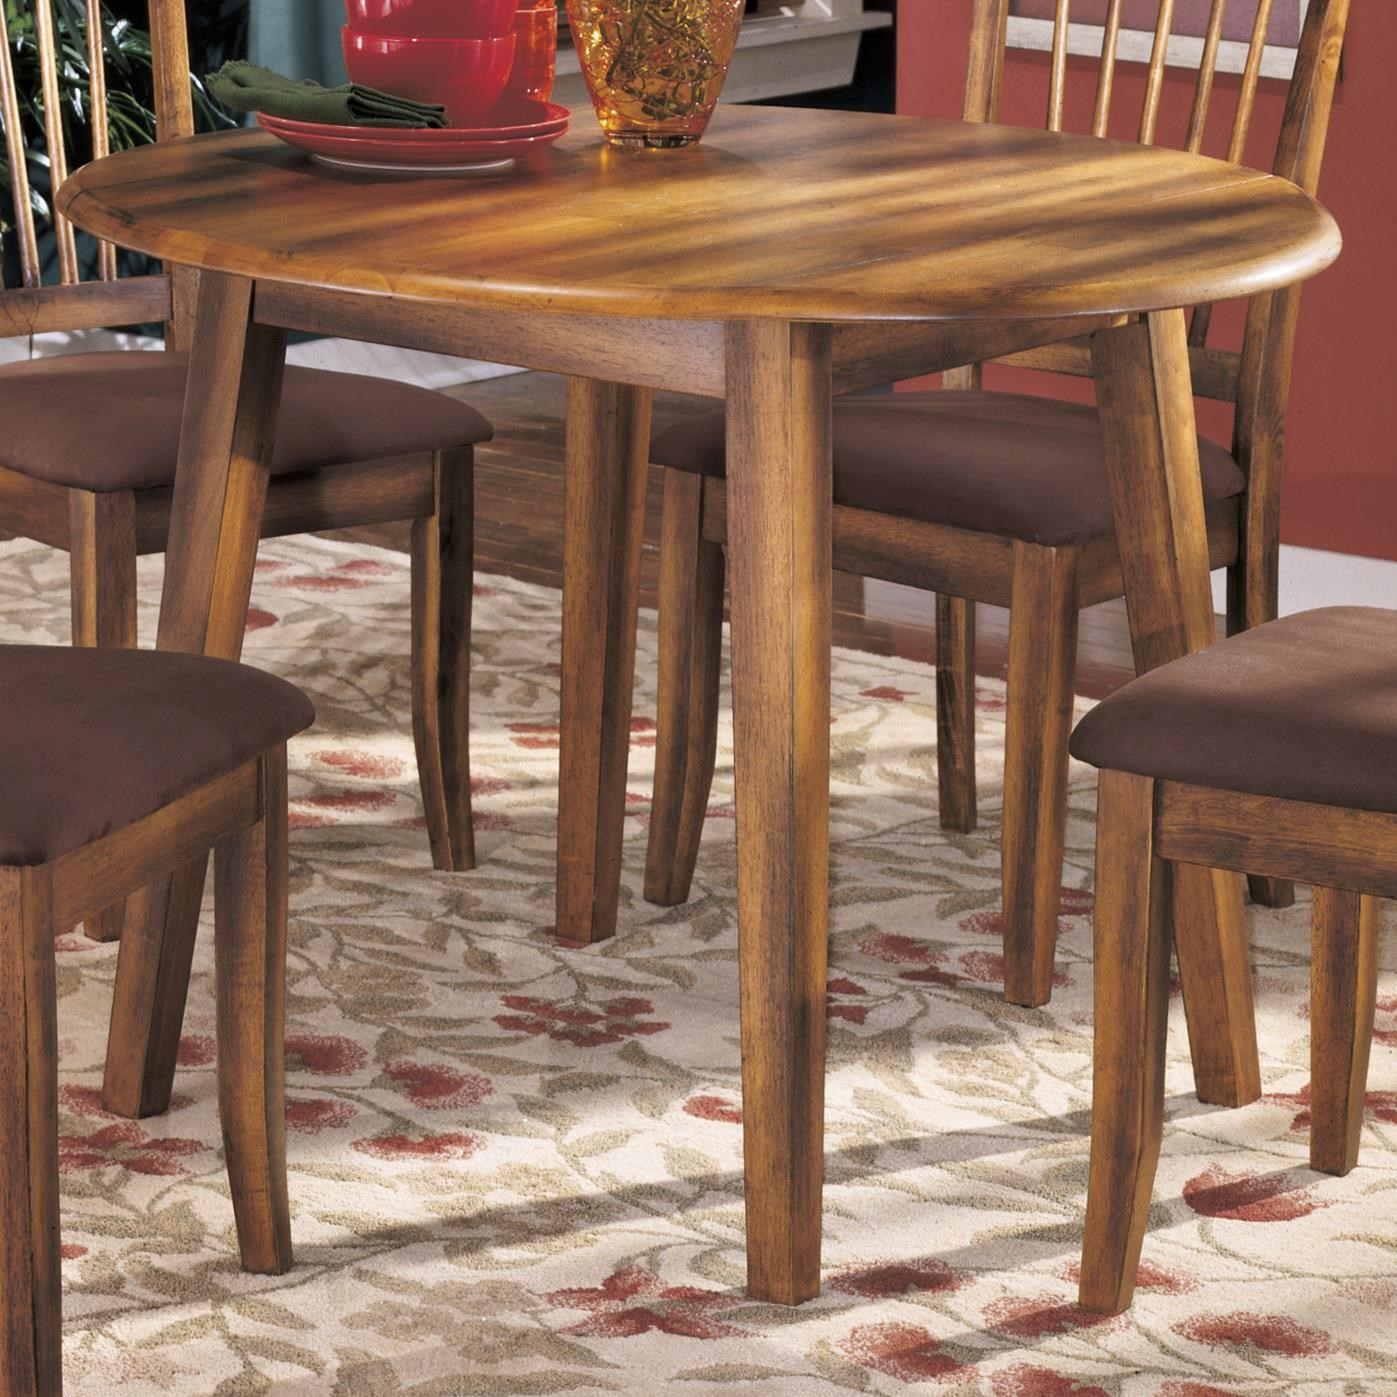 Ashley Furniture BerringerRound Drop Leaf Table ...  sc 1 st  Furniture and ApplianceMart & Ashley Furniture Berringer D199-15 Hickory Stained Hardwood Round ...